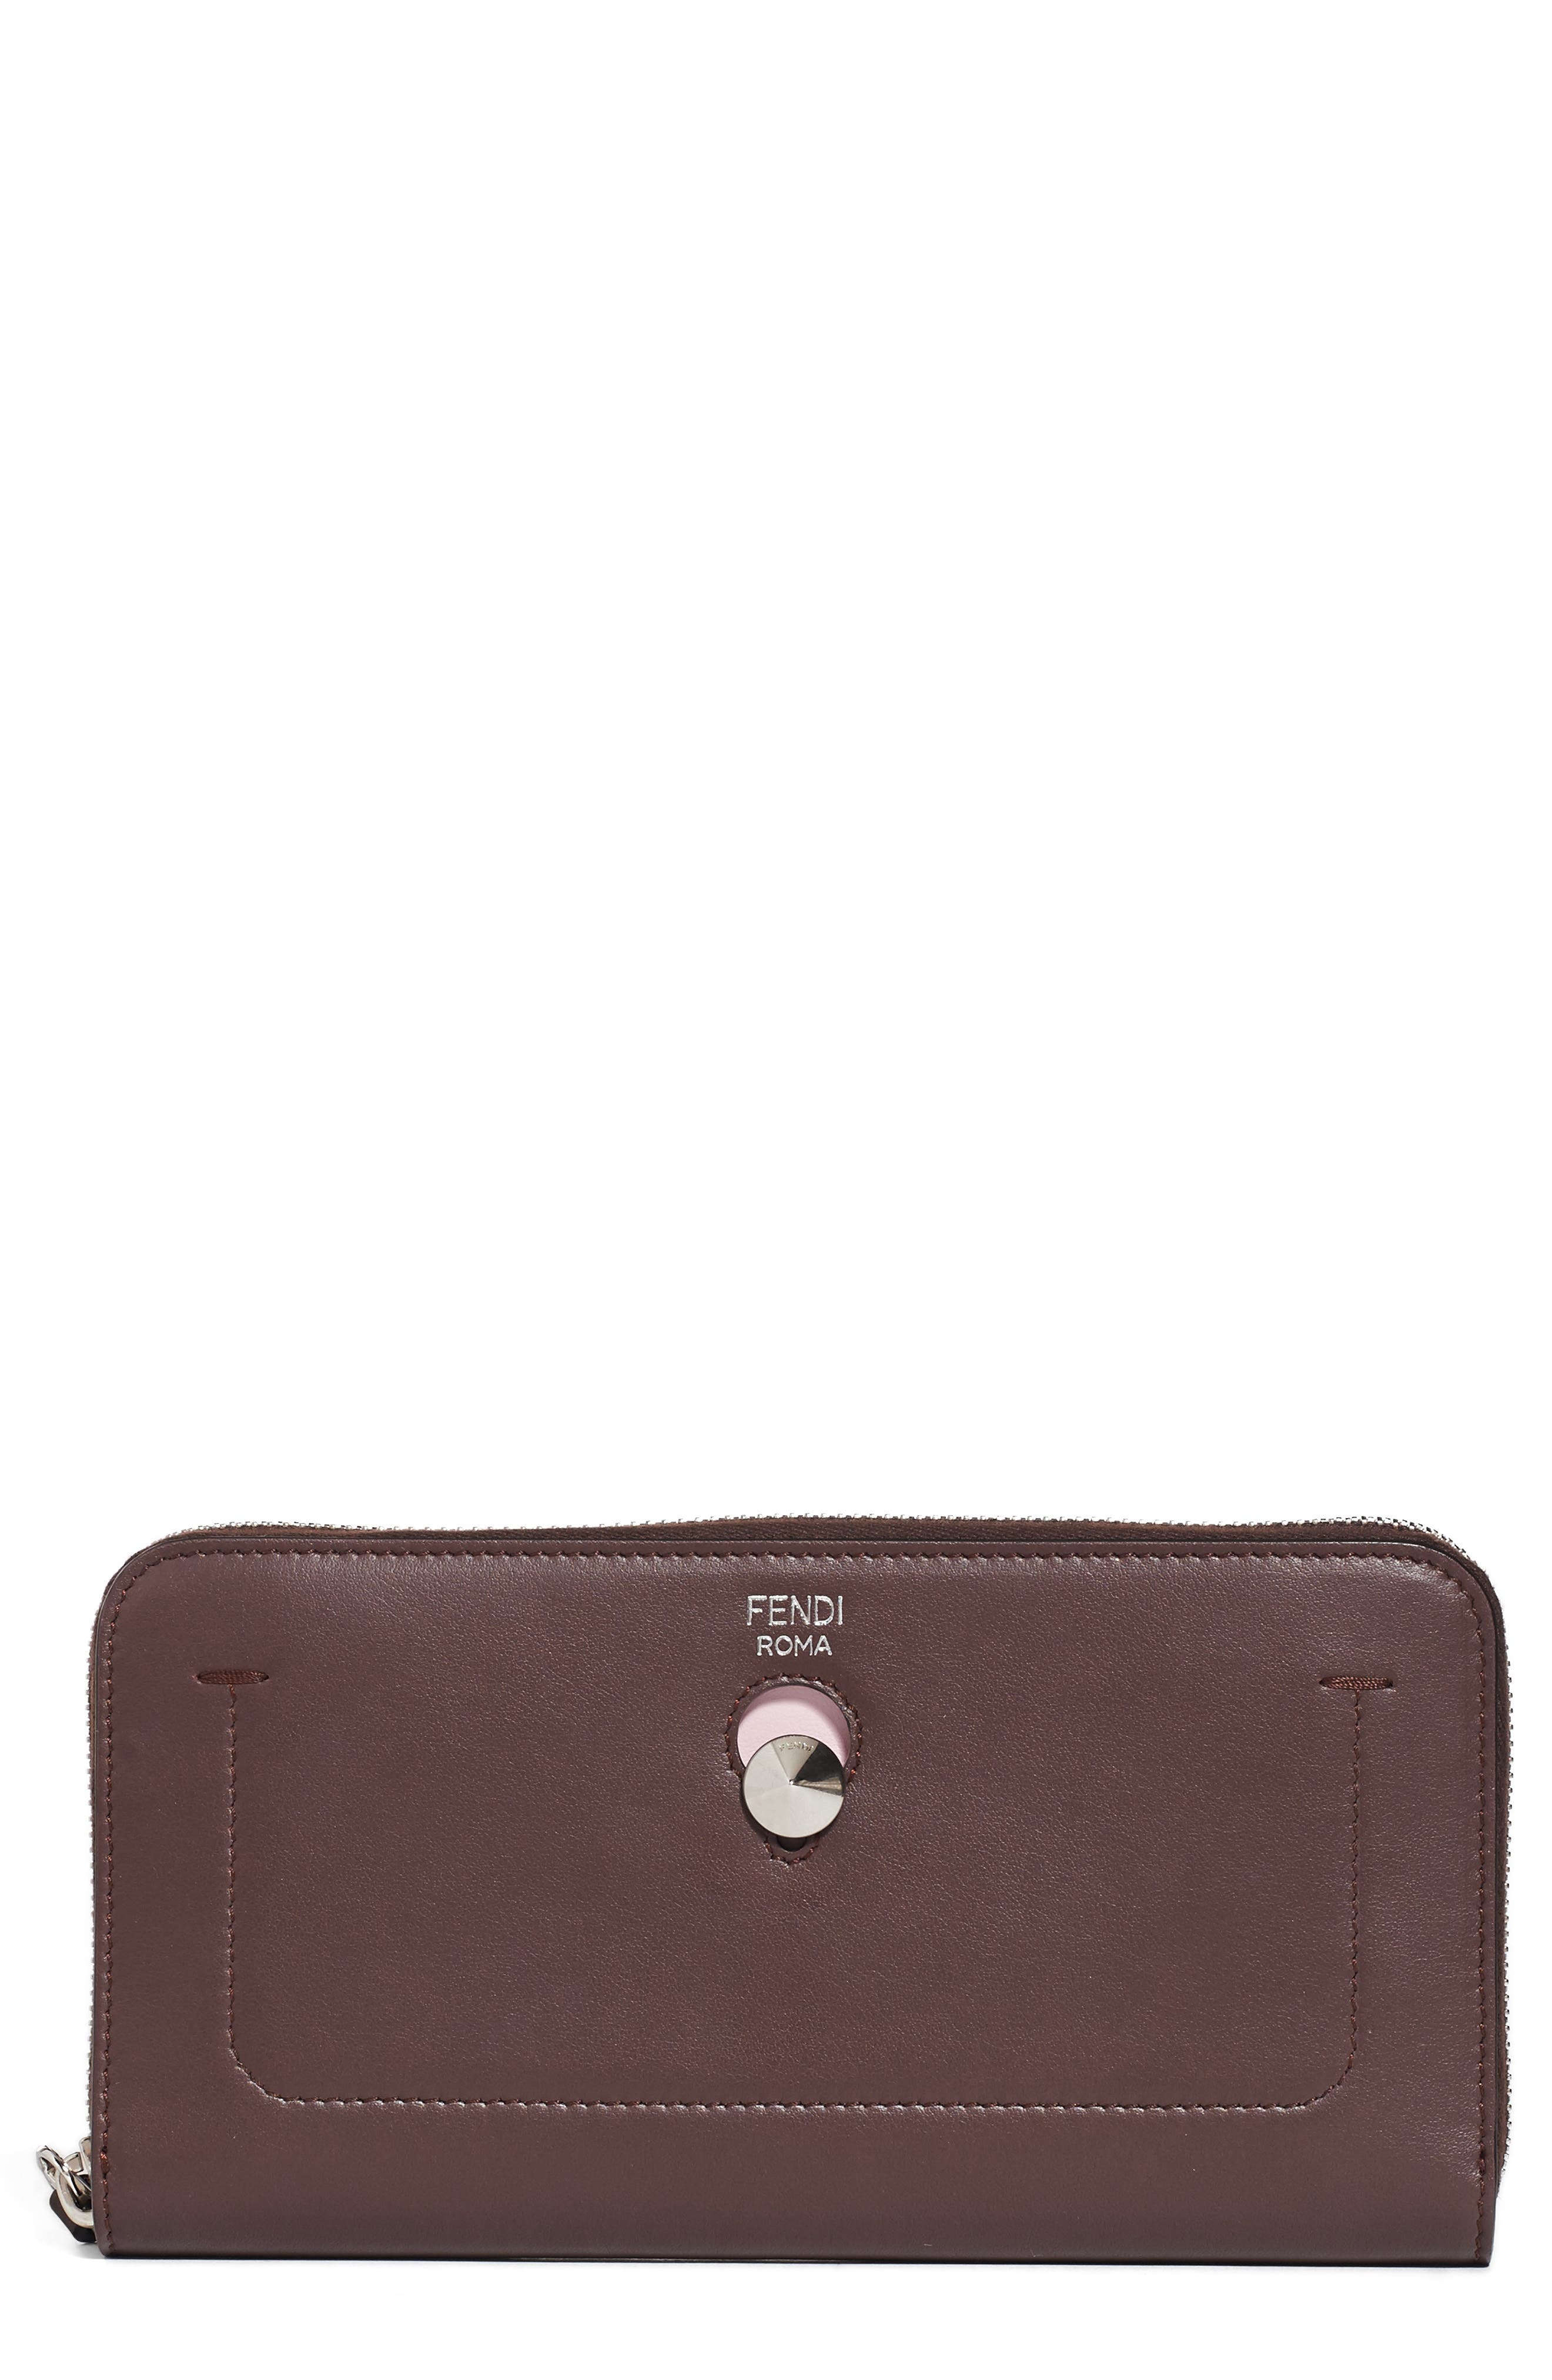 Dotcom Calfskin Leather Clutch Wallet,                         Main,                         color, Red